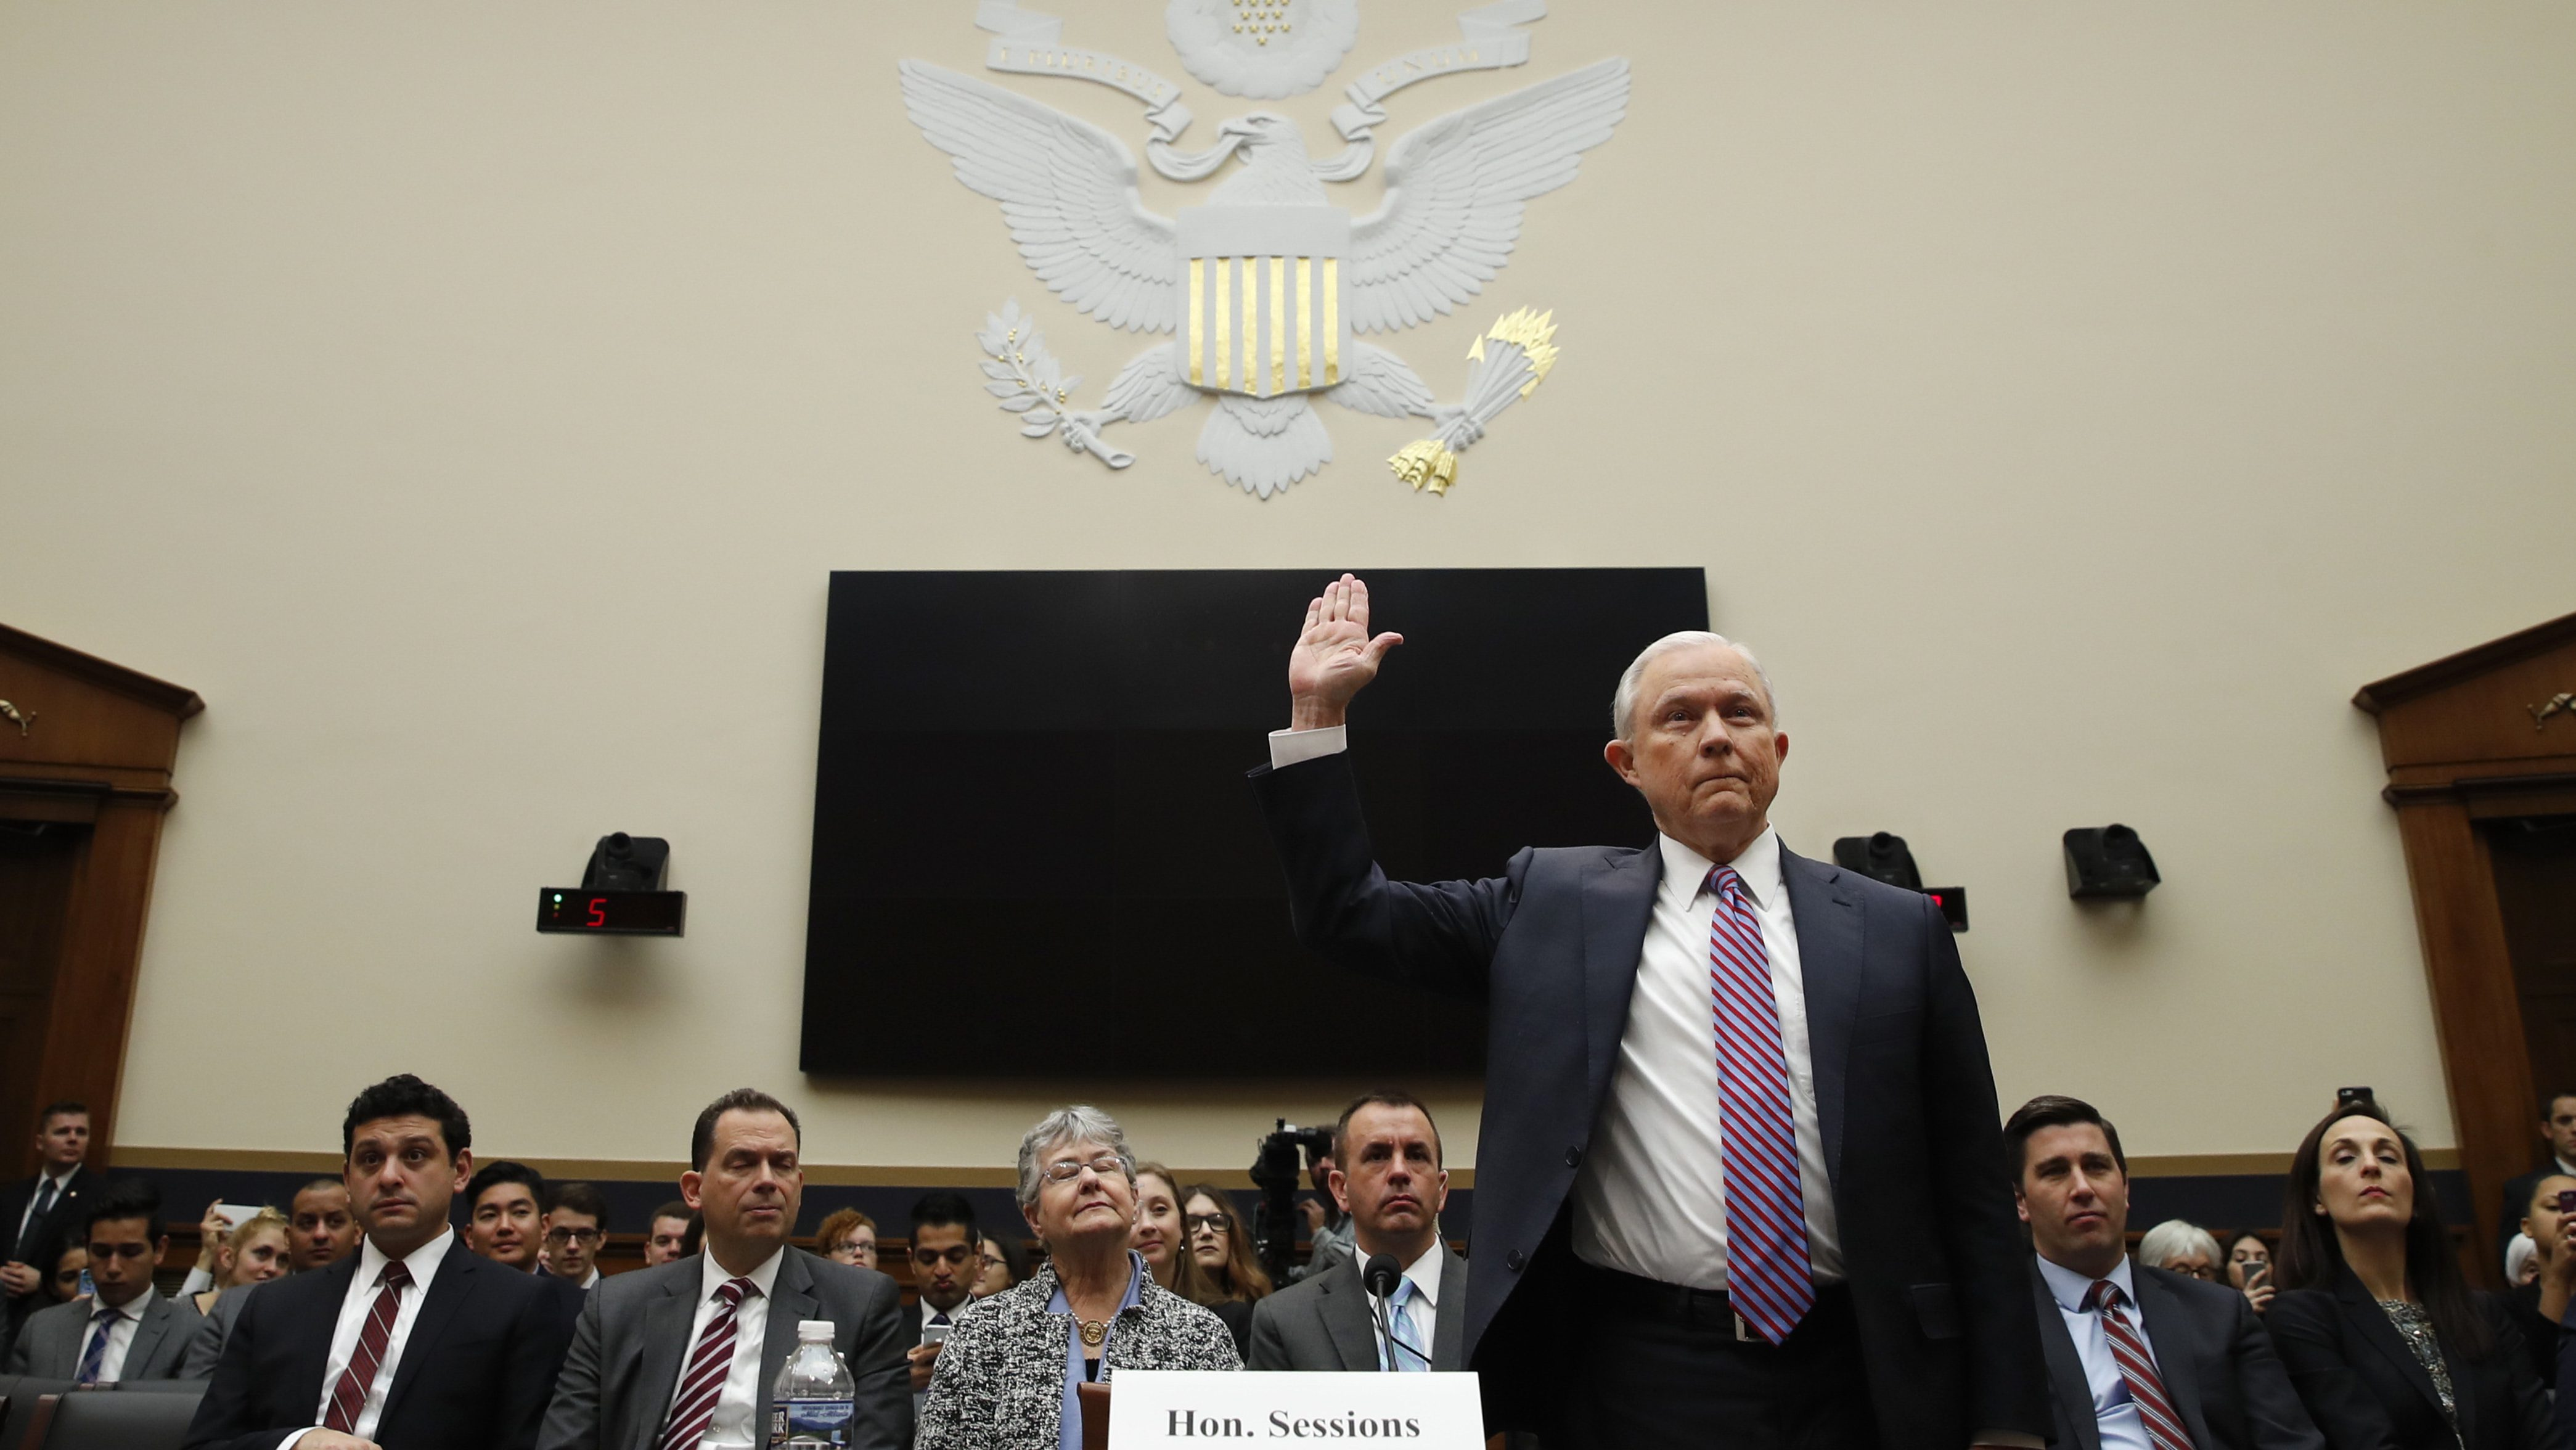 Attorney General Jeff Sessions is sworn in before the House Judiciary Committee on Capitol Hill, Tuesday, Nov. 14, 2017 in Washington. Sessions is expected to answer a range of questions from Russian meddling in the presidential campaign and his interest in a special counsel to investigate the Clinton Foundation.  (AP Photo/Alex Brandon)